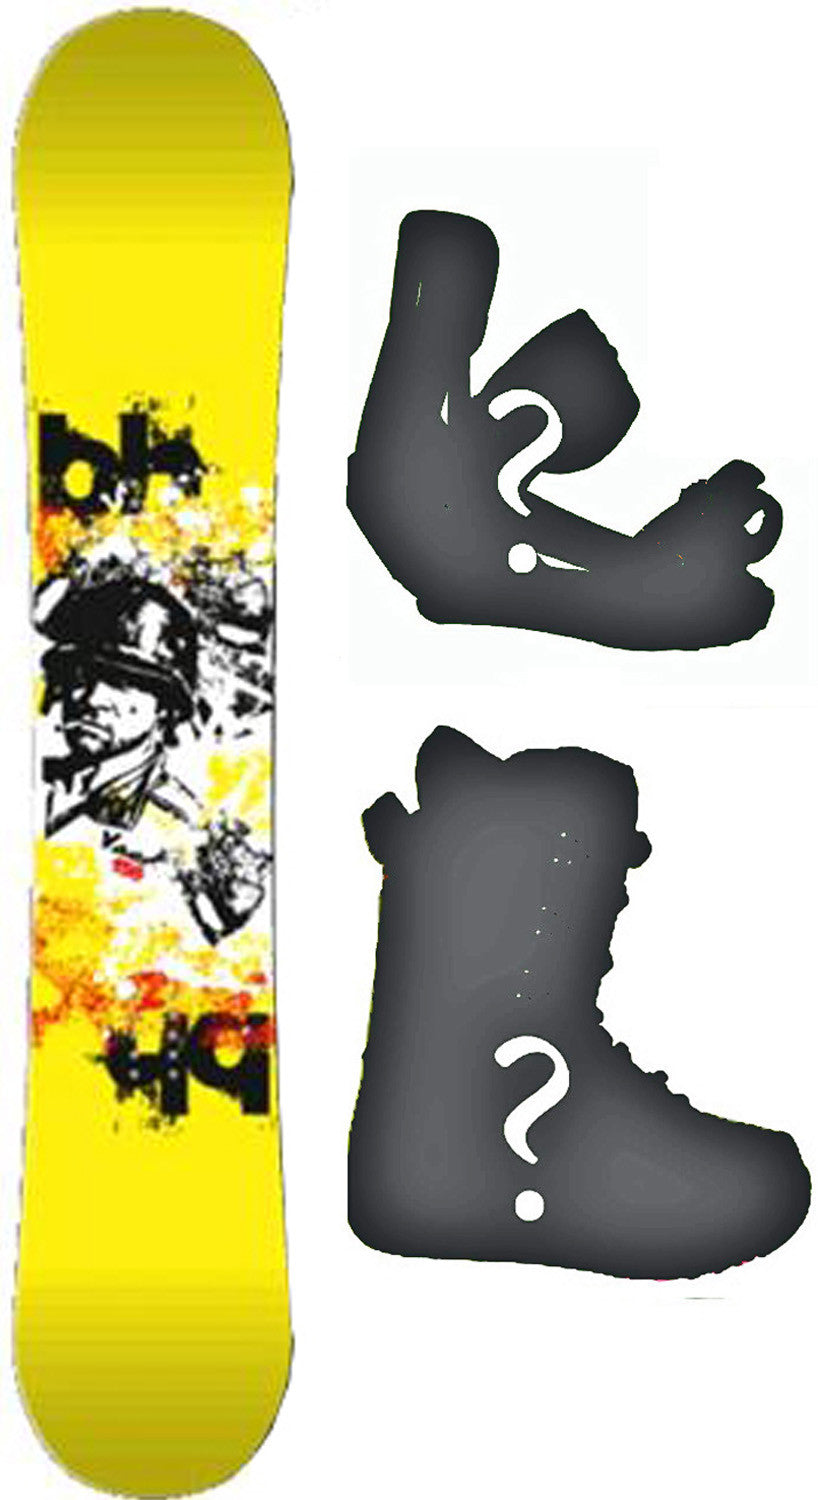 153cm  Black Hole D Skate Rocker Snowboard, Build a Package with Boots and Bindings